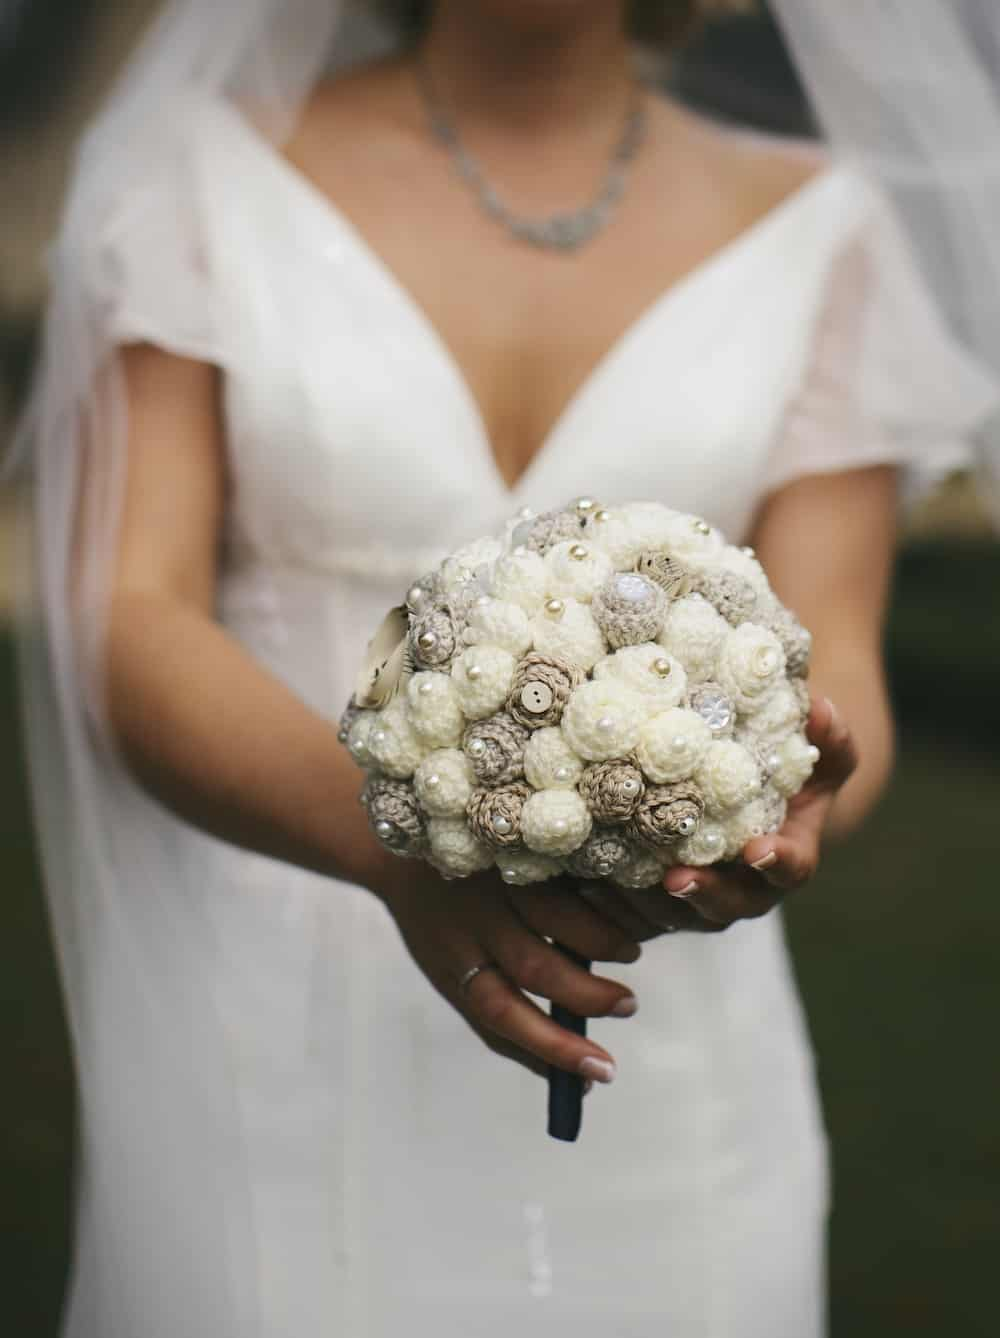 Crochet your own wedding bouquet with this beautiful cream and ivory beaded bouquet.